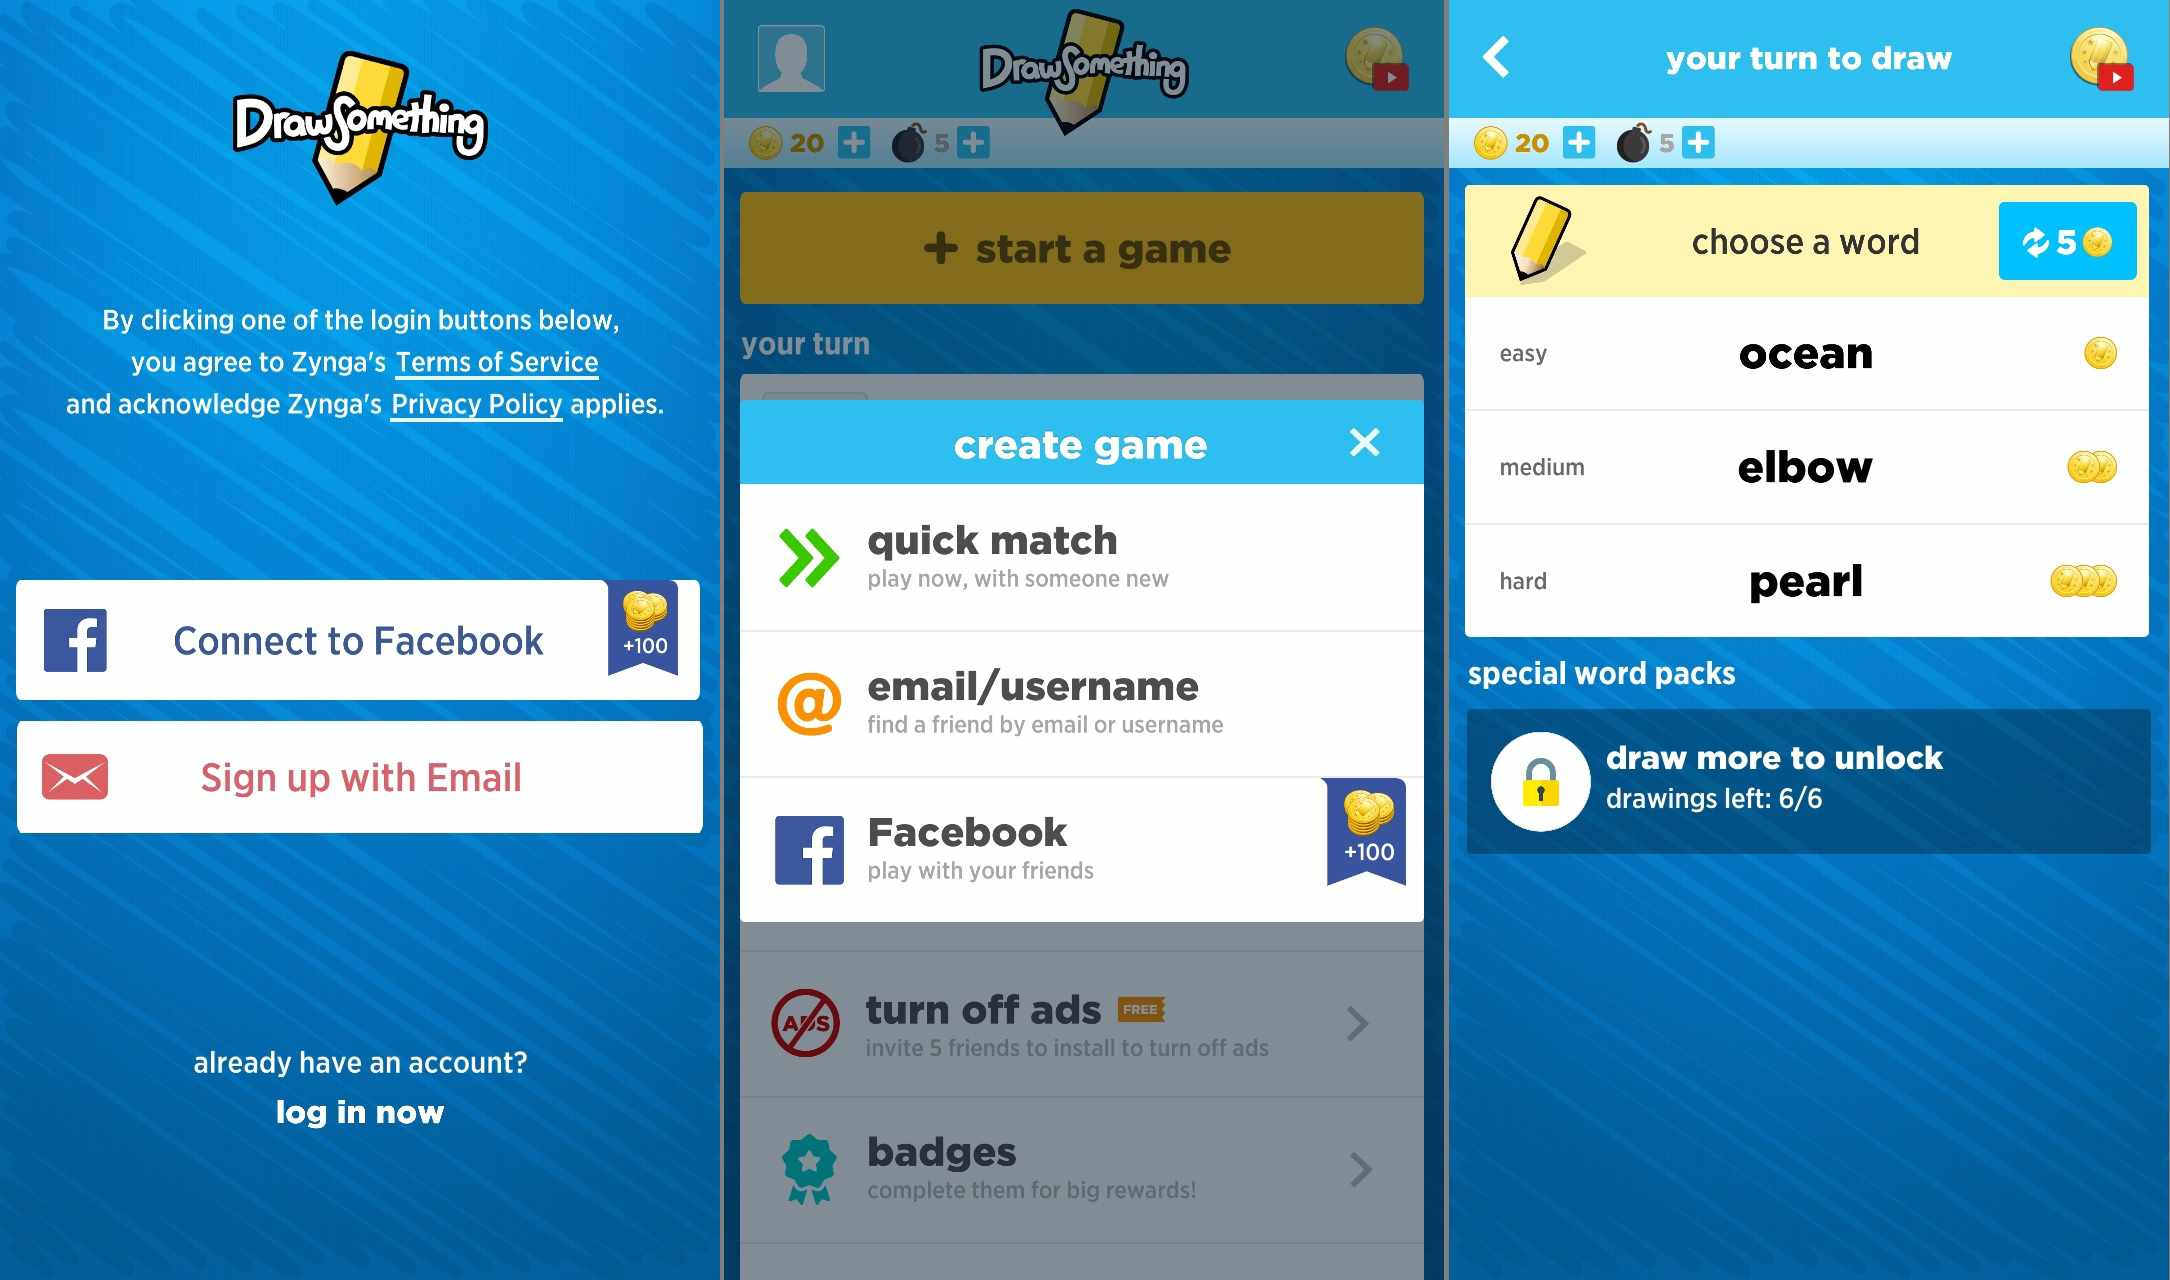 How to play Draw Something for Android